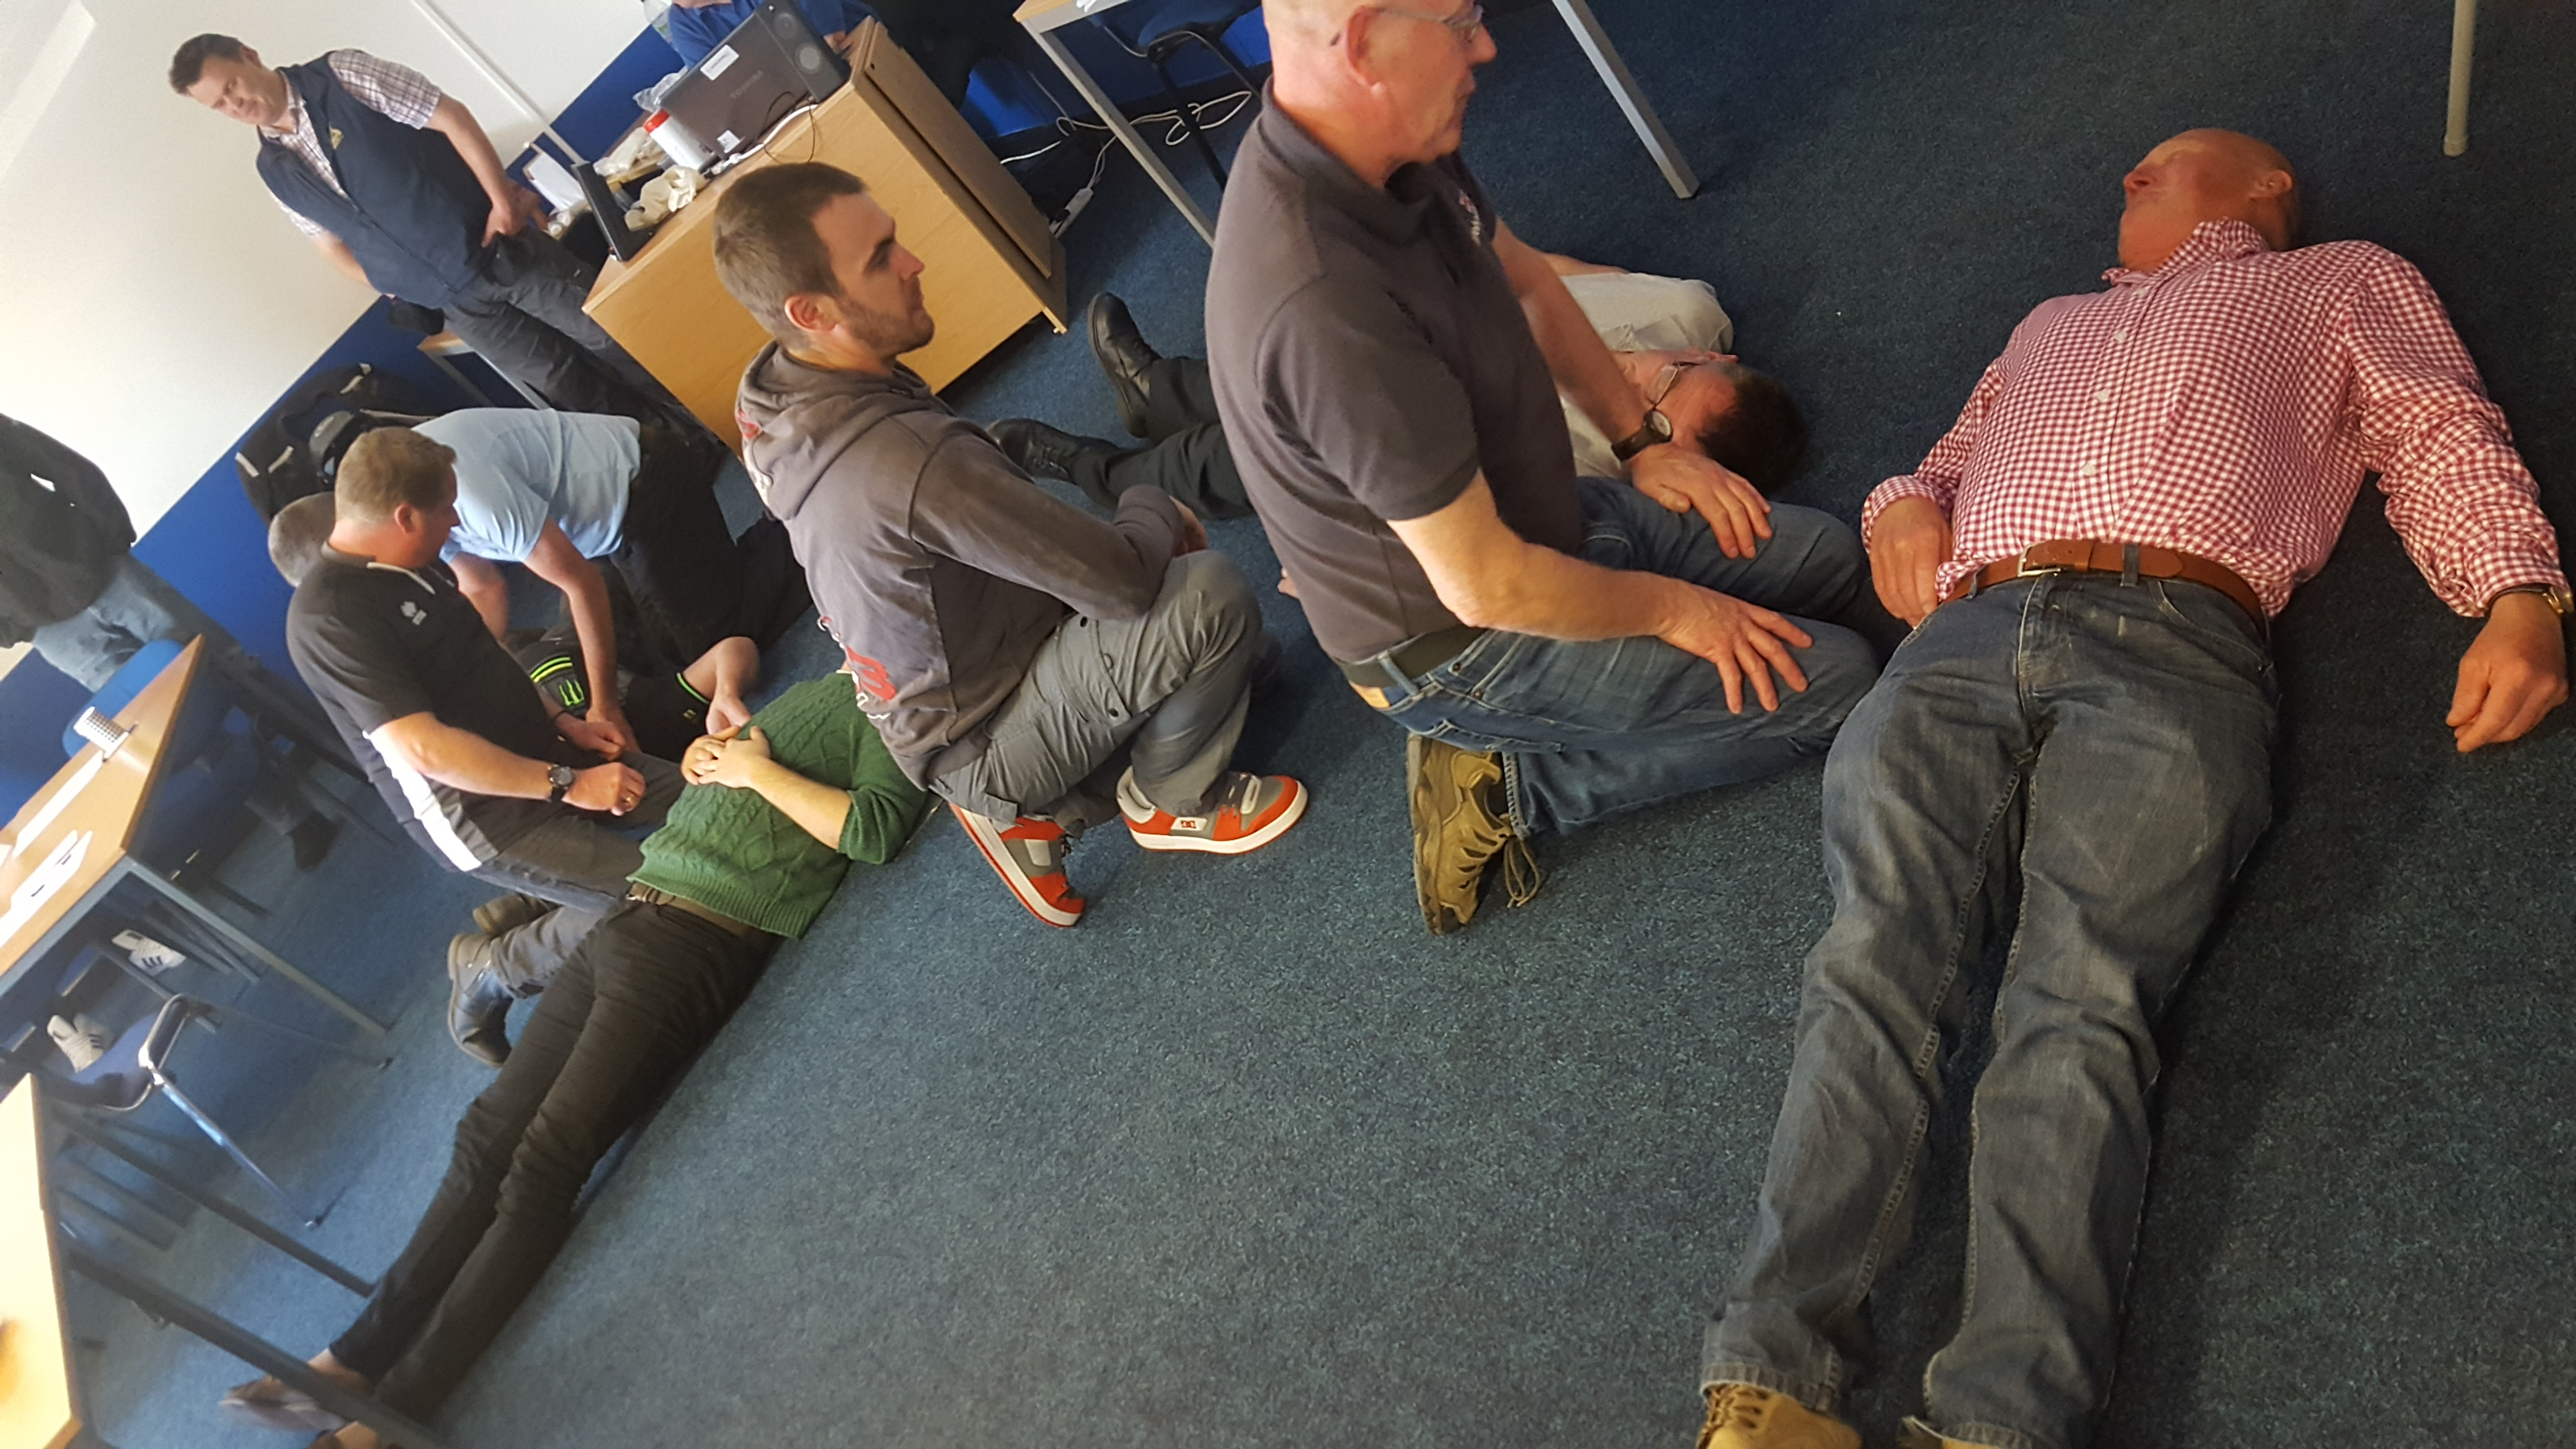 Emergency first aid at work training session